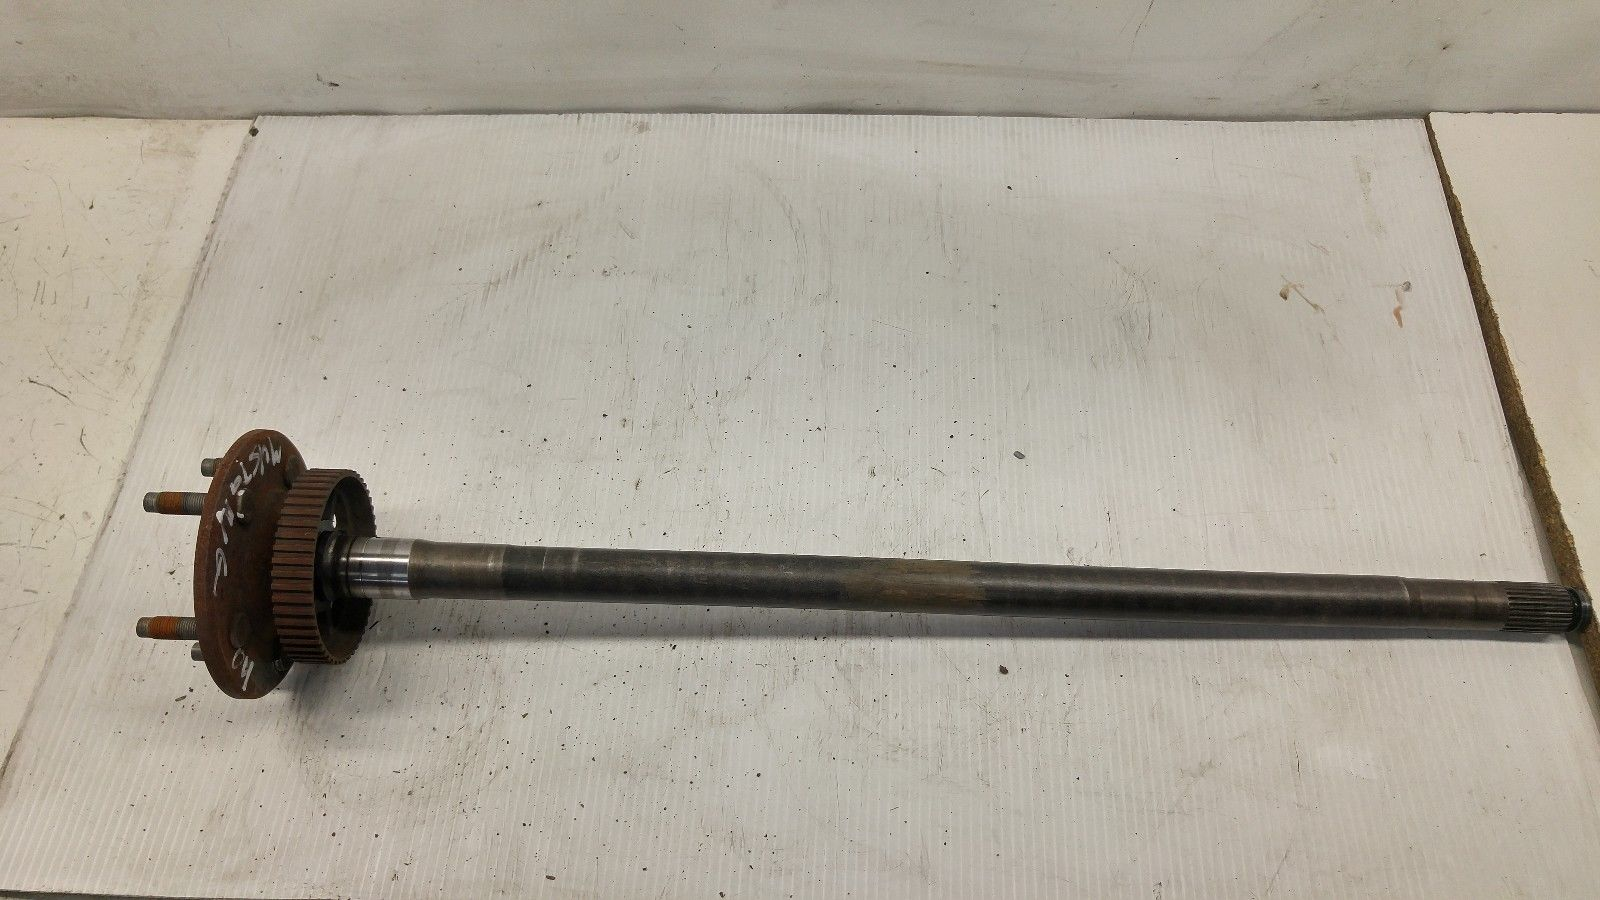 IP606176 2004 Mustang Rear Right Axle Shaft w/o ABS RH Right Side Passengers OEM Does not apply